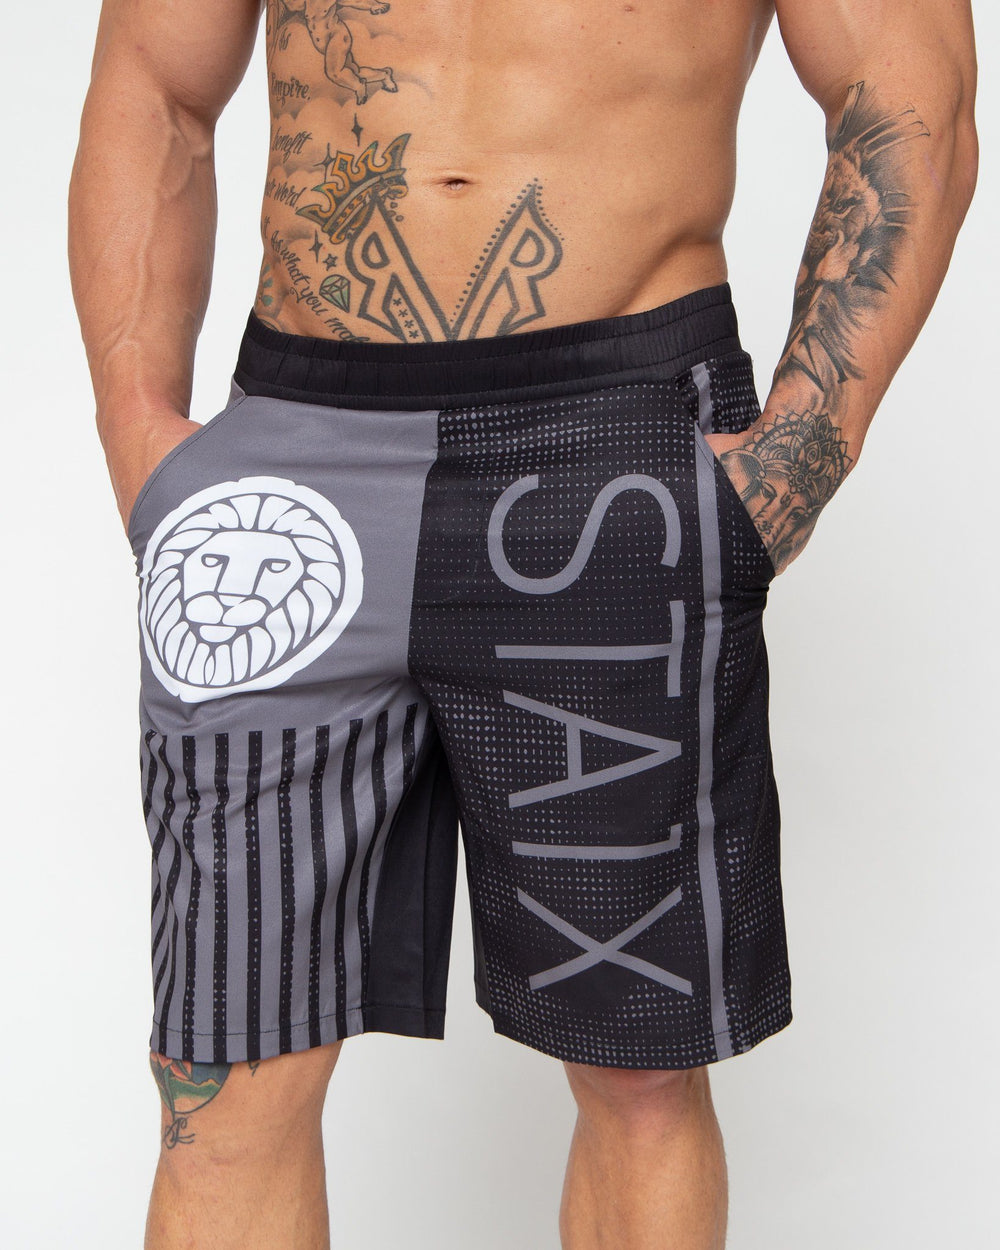 PATRIOT SHORTS Men's Shorts STAIX